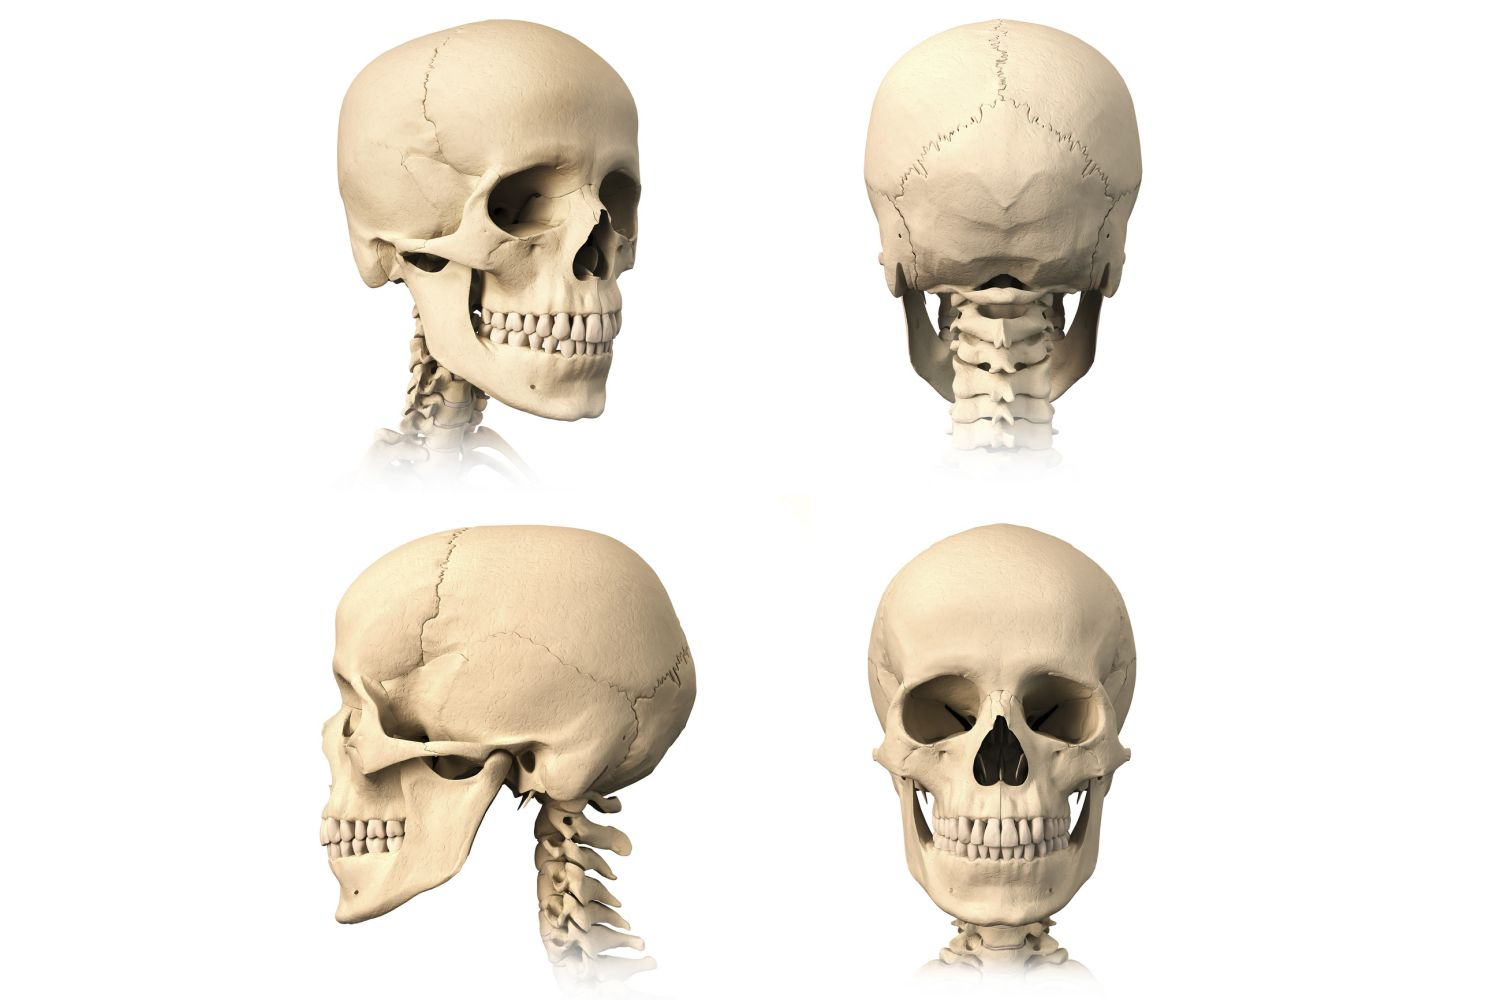 Diagram showing skull from multiple angles with bones visible on a white background.